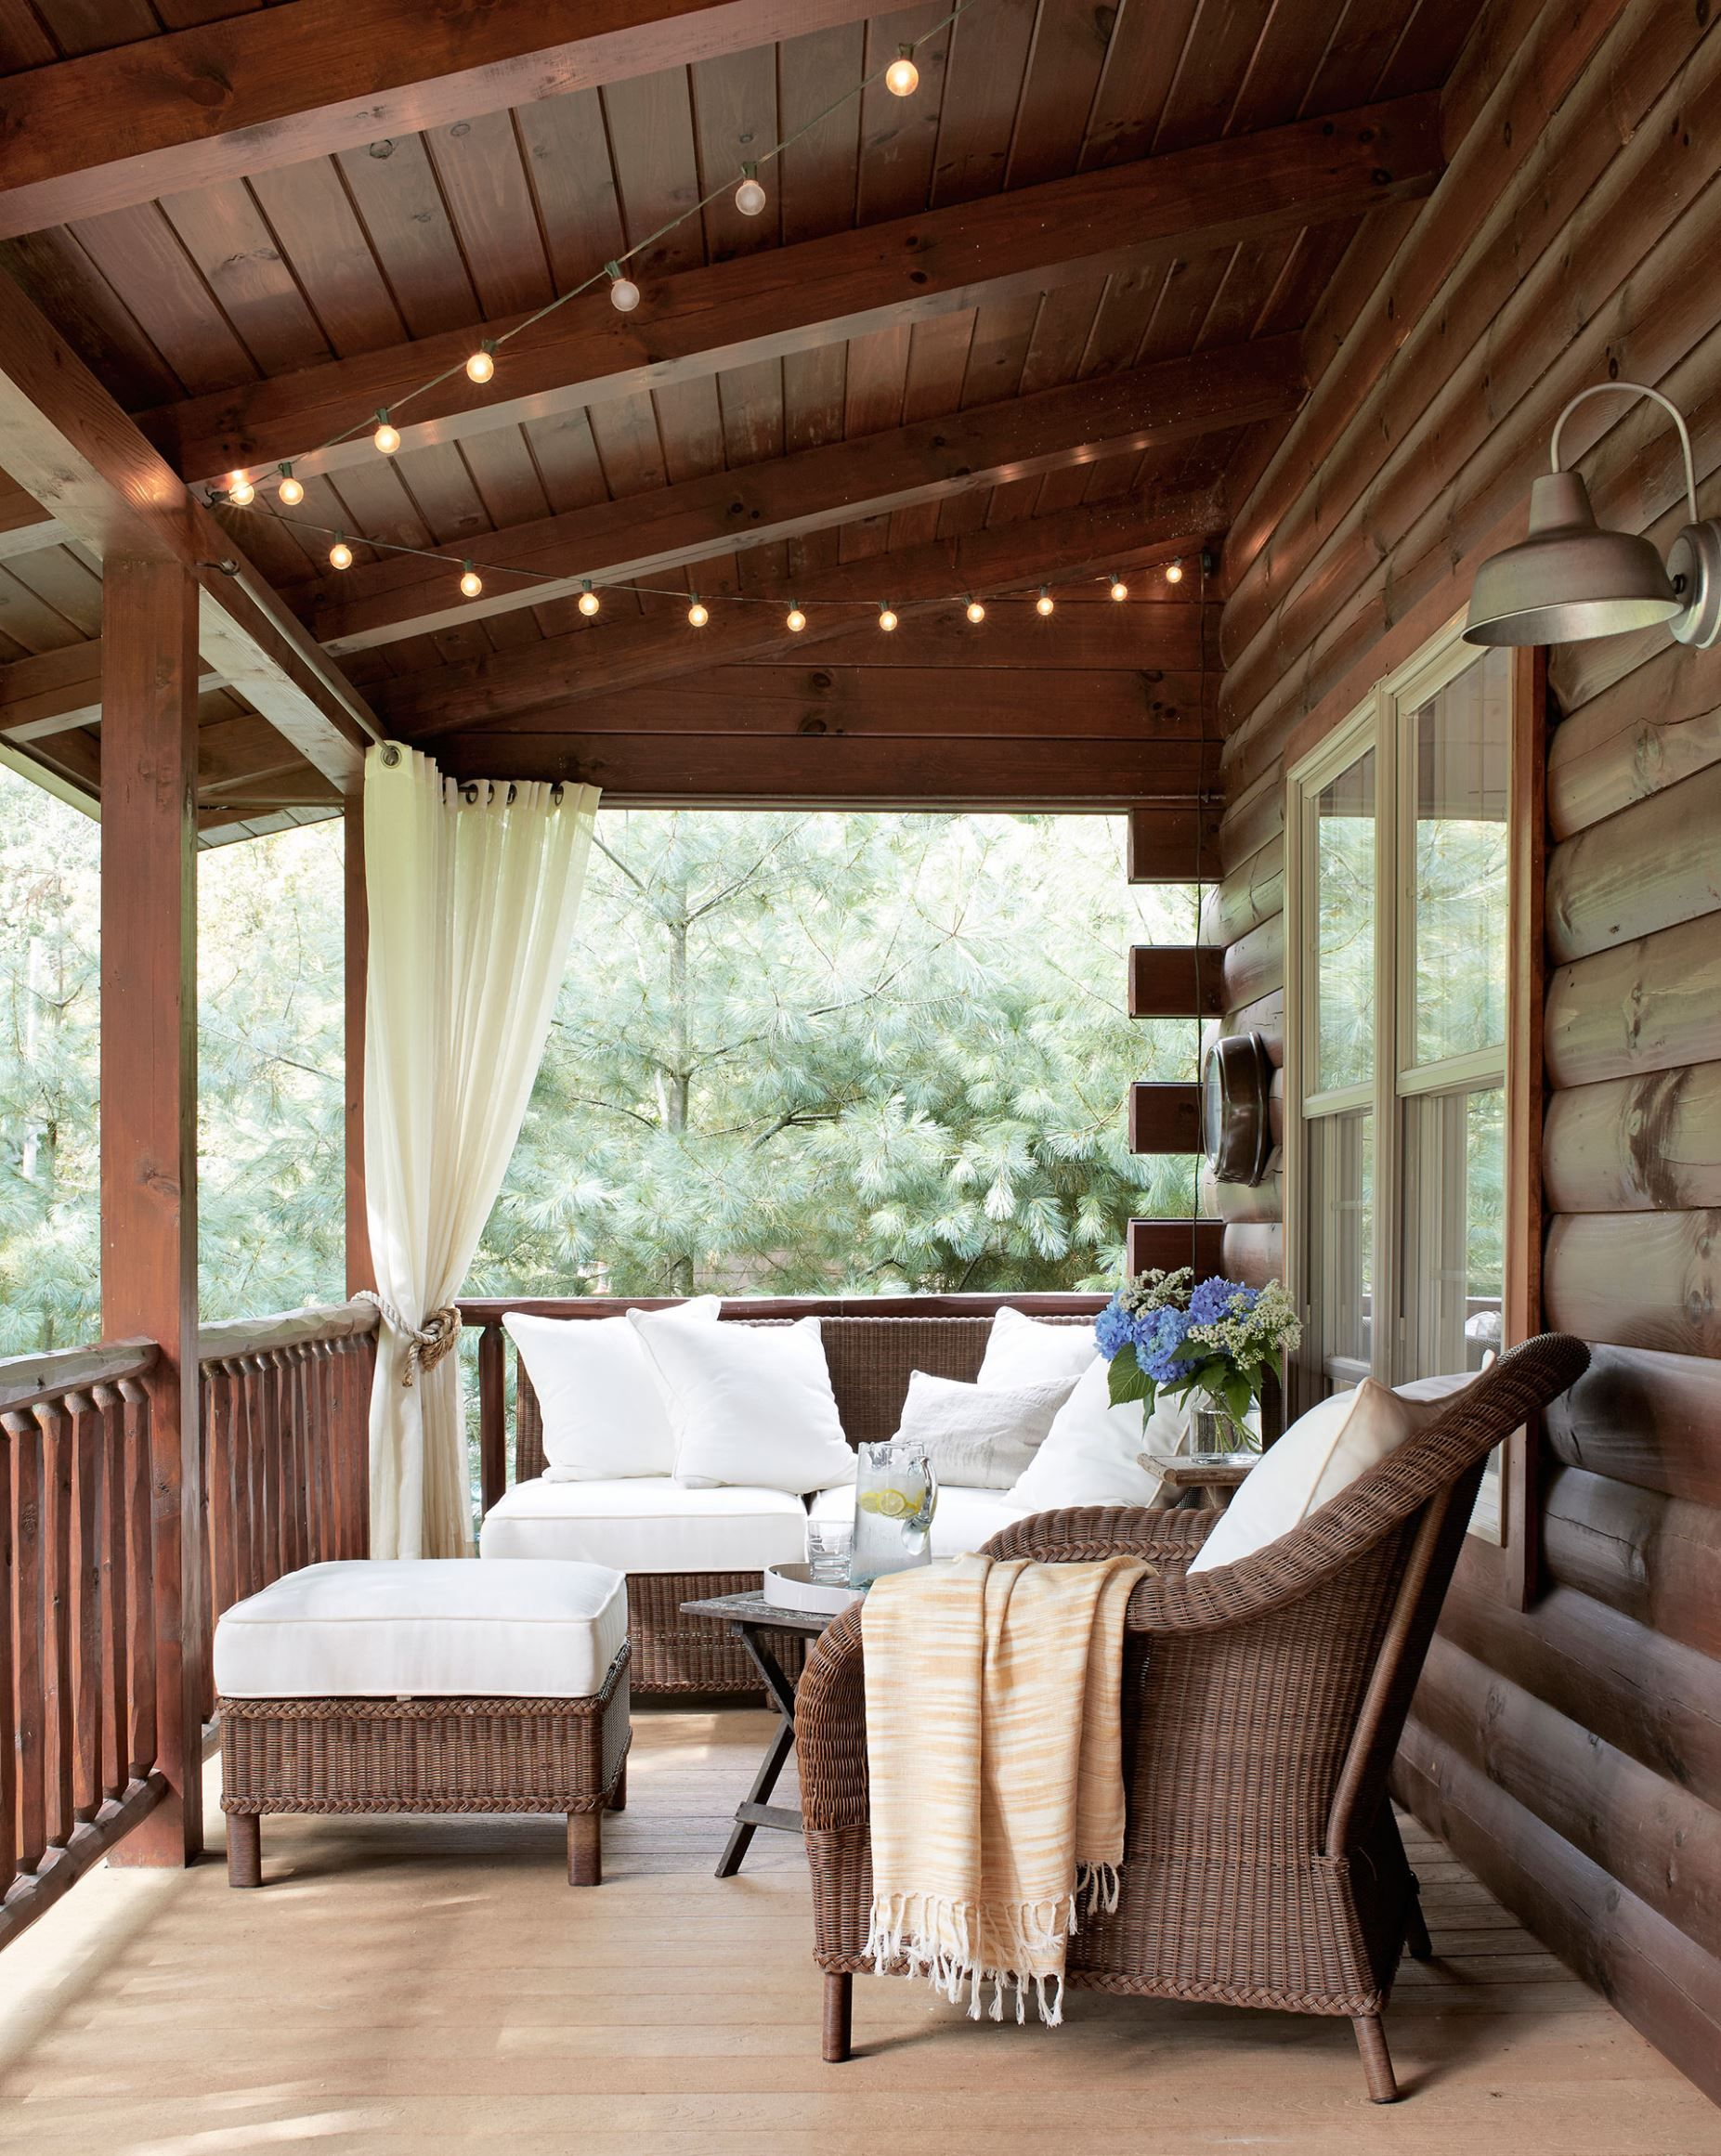 Ohio Lake House With Twinkle Lights and Wicker Furniture from